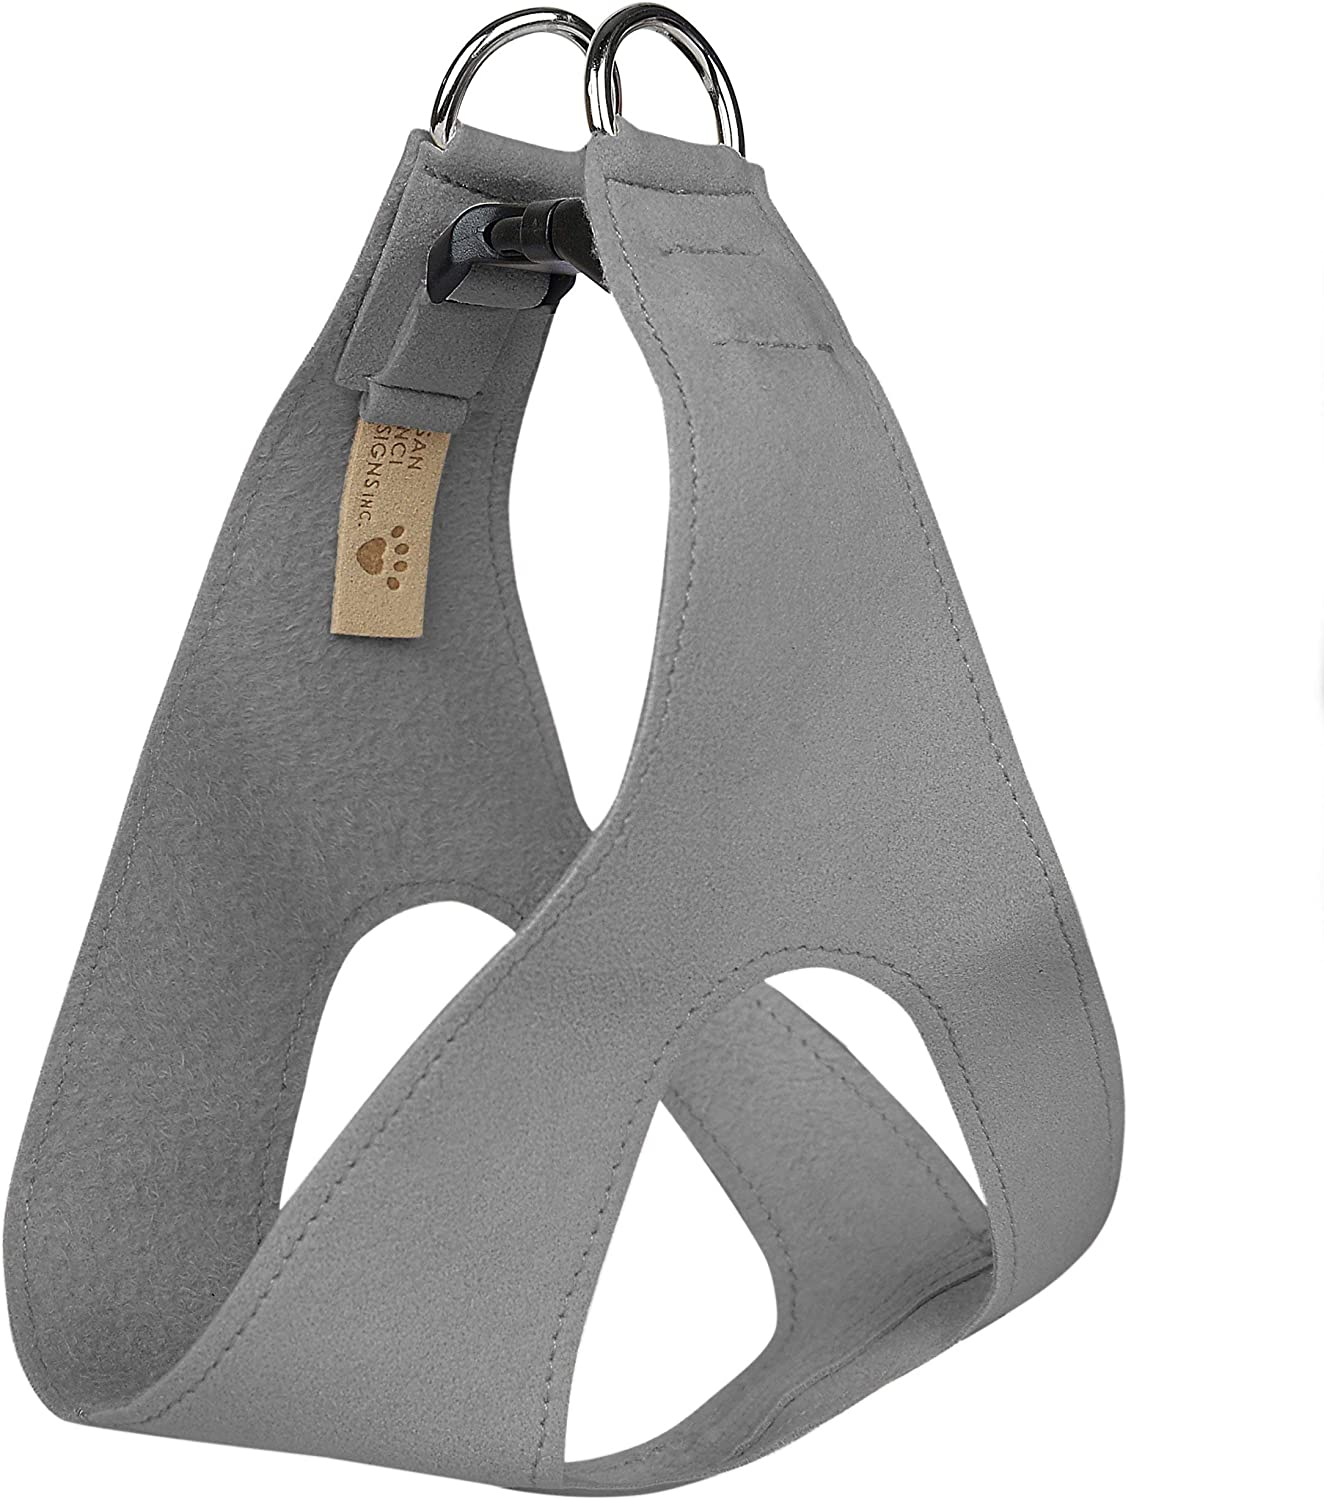 Susan Lanci 2021new shipping free Designs Premium New life Ultrasuede Step Harness in for a Dog